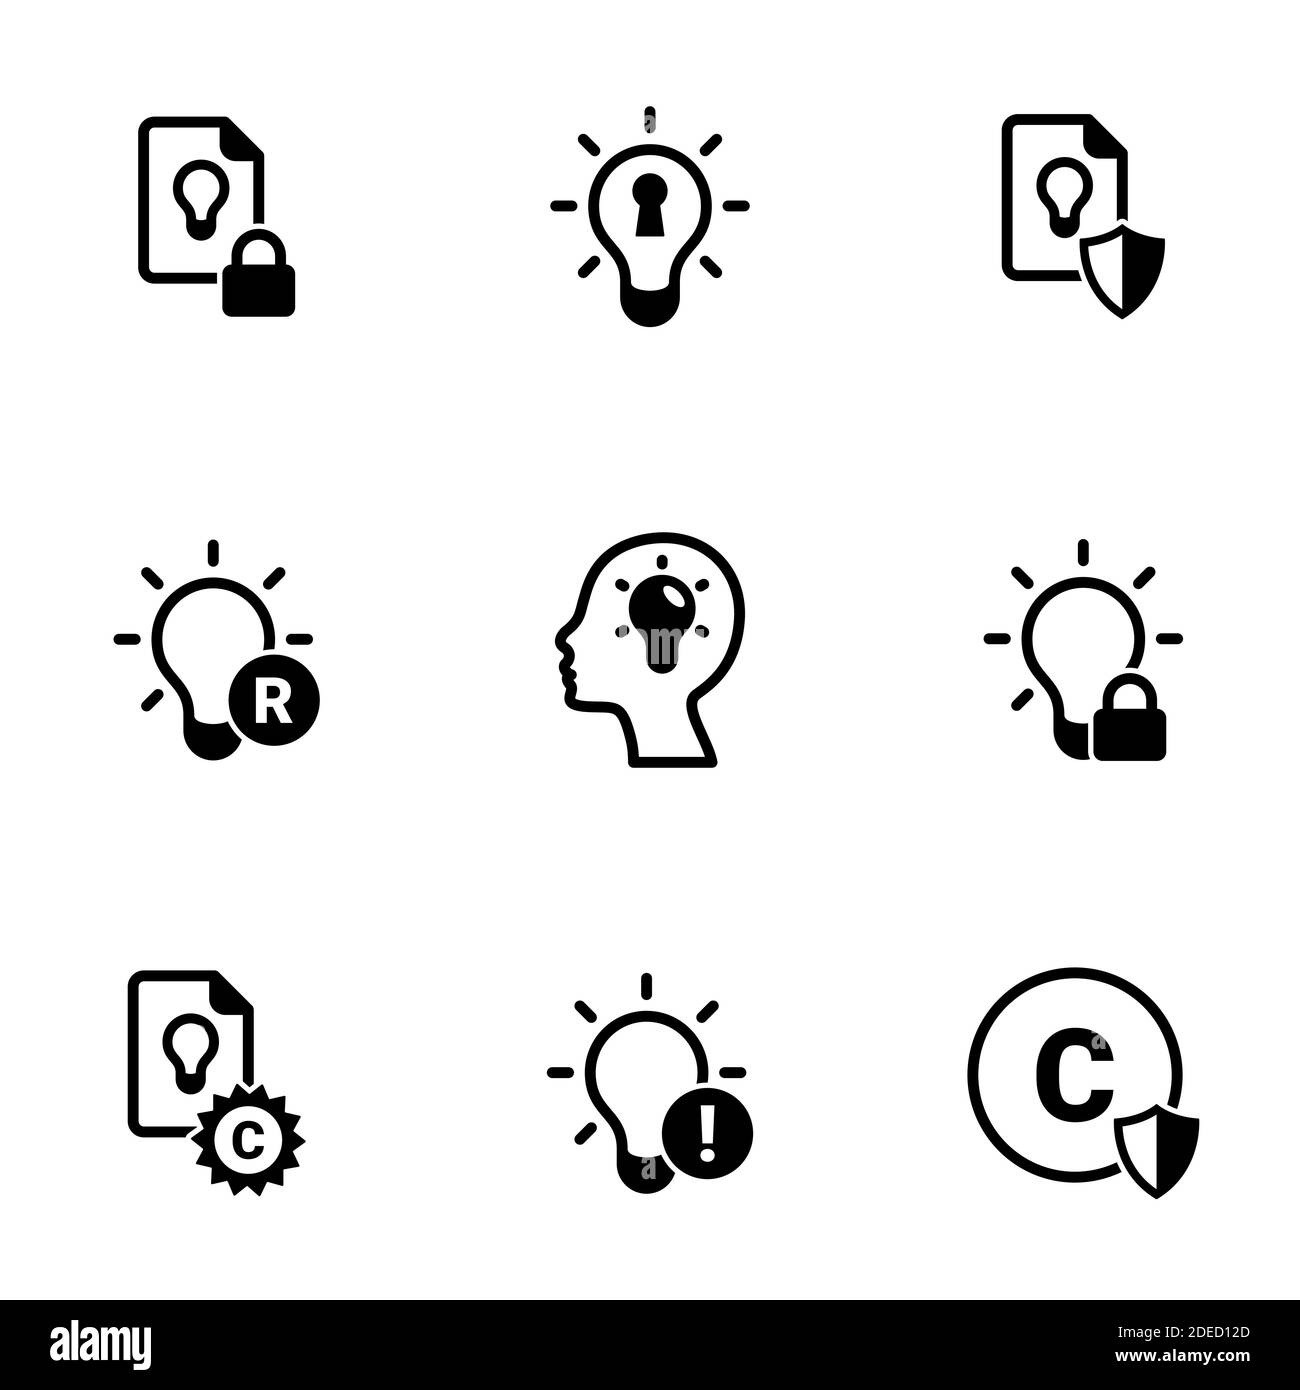 Set of simple icons on a theme Intellectual property, vector, design, collection, flat, sign, symbol,element, object, illustration, isolated. White ba Stock Vector